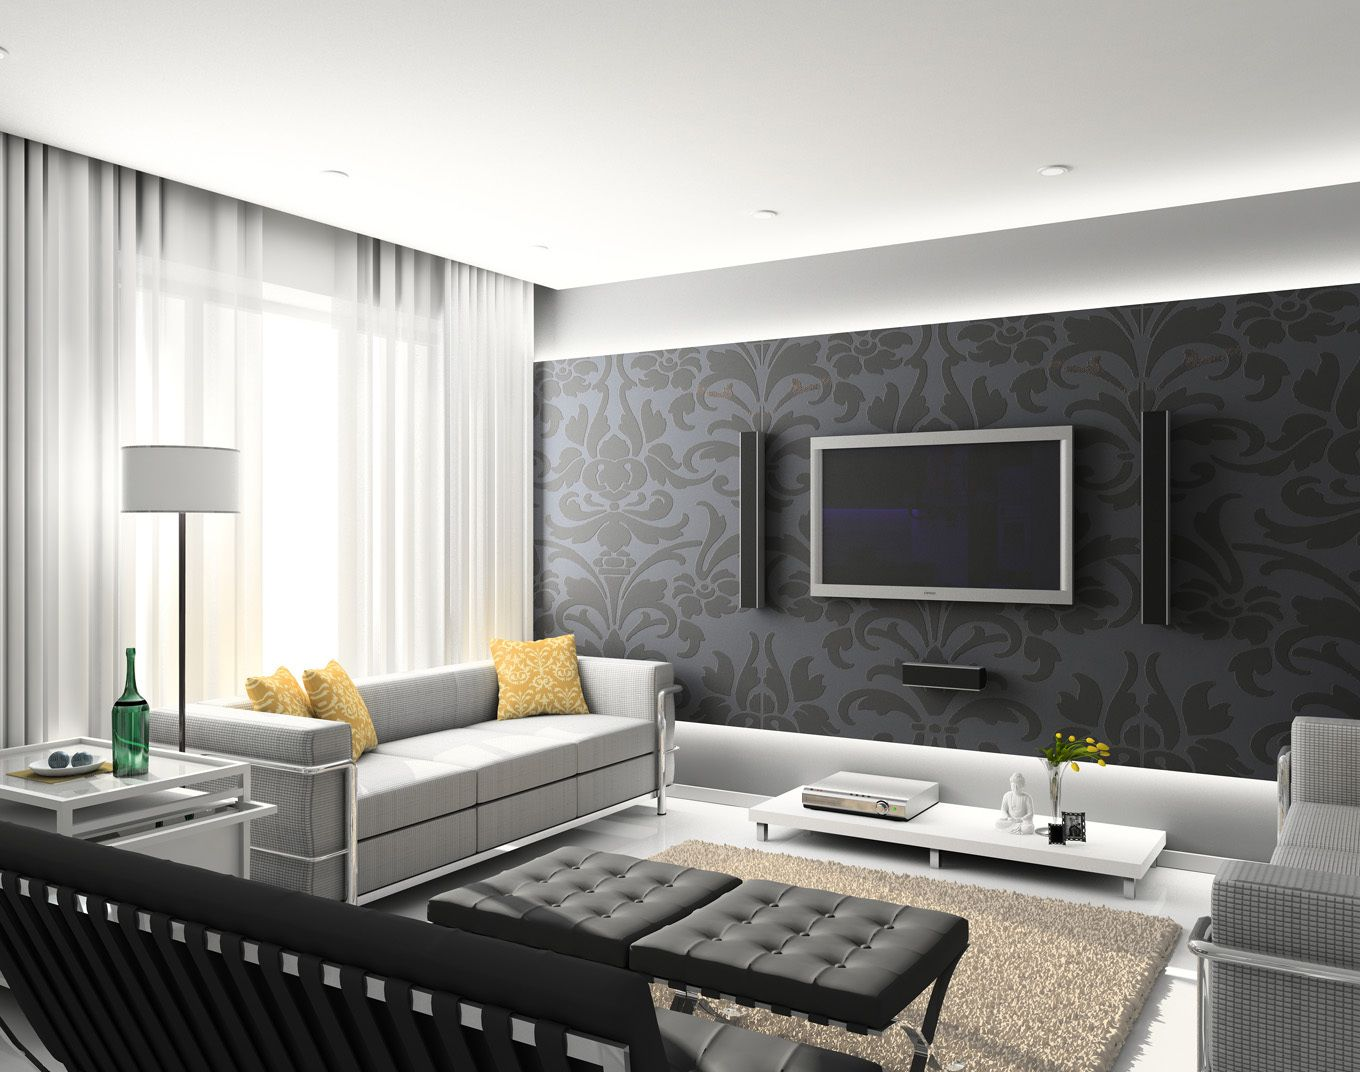 15 Helpful Ideas For Designing Your Living Room Photos Living